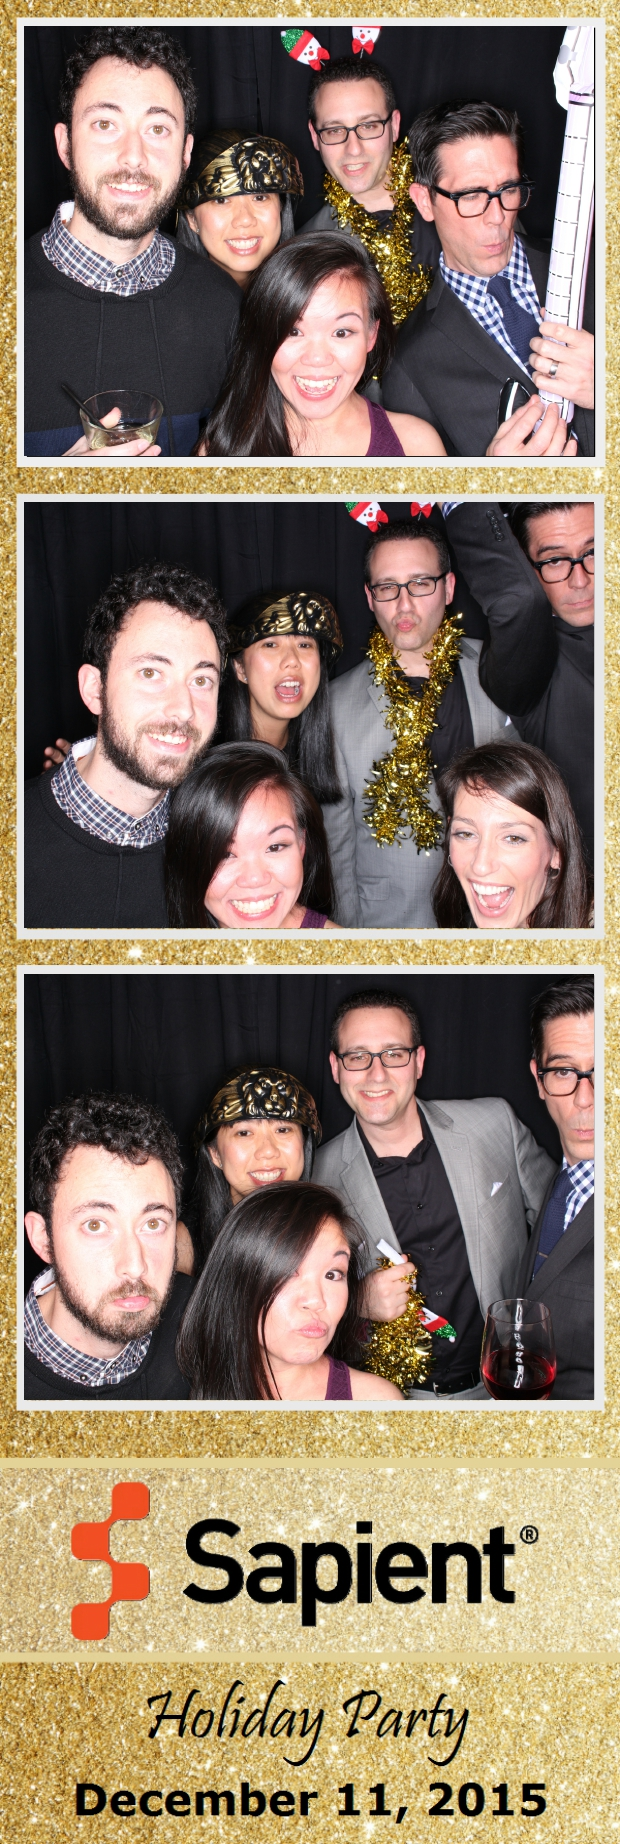 Guest House Events Photo Booth Sapient Holiday Party (46).jpg